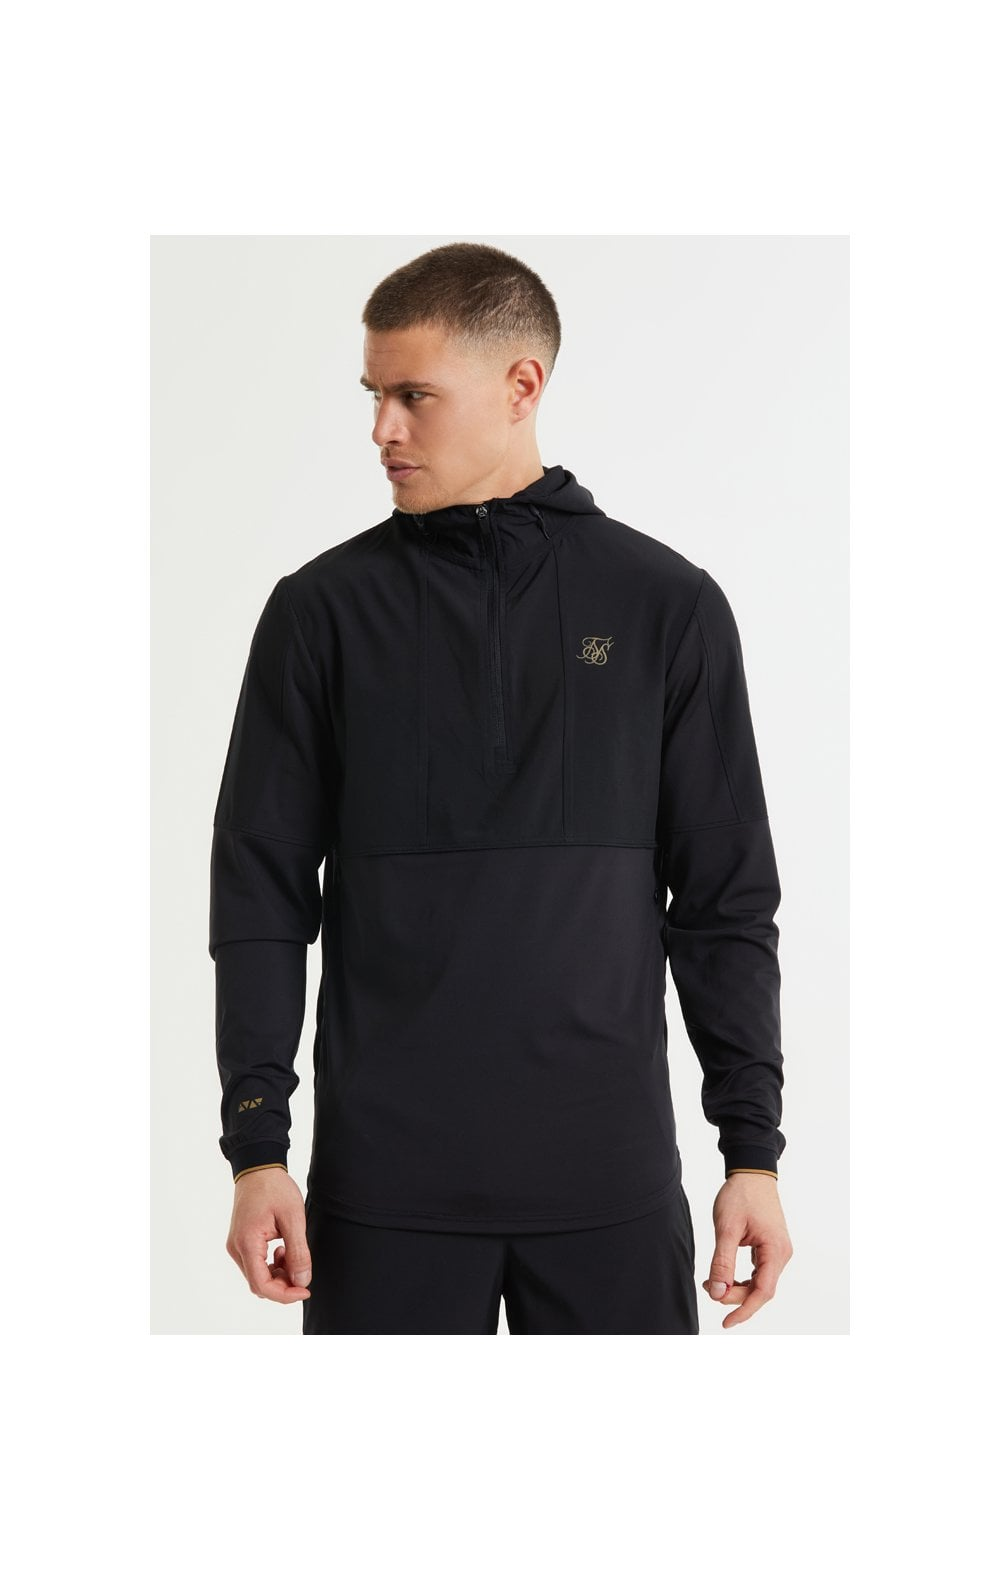 SikSilk Quarter Zip Performance Hoodie - Black & Gold